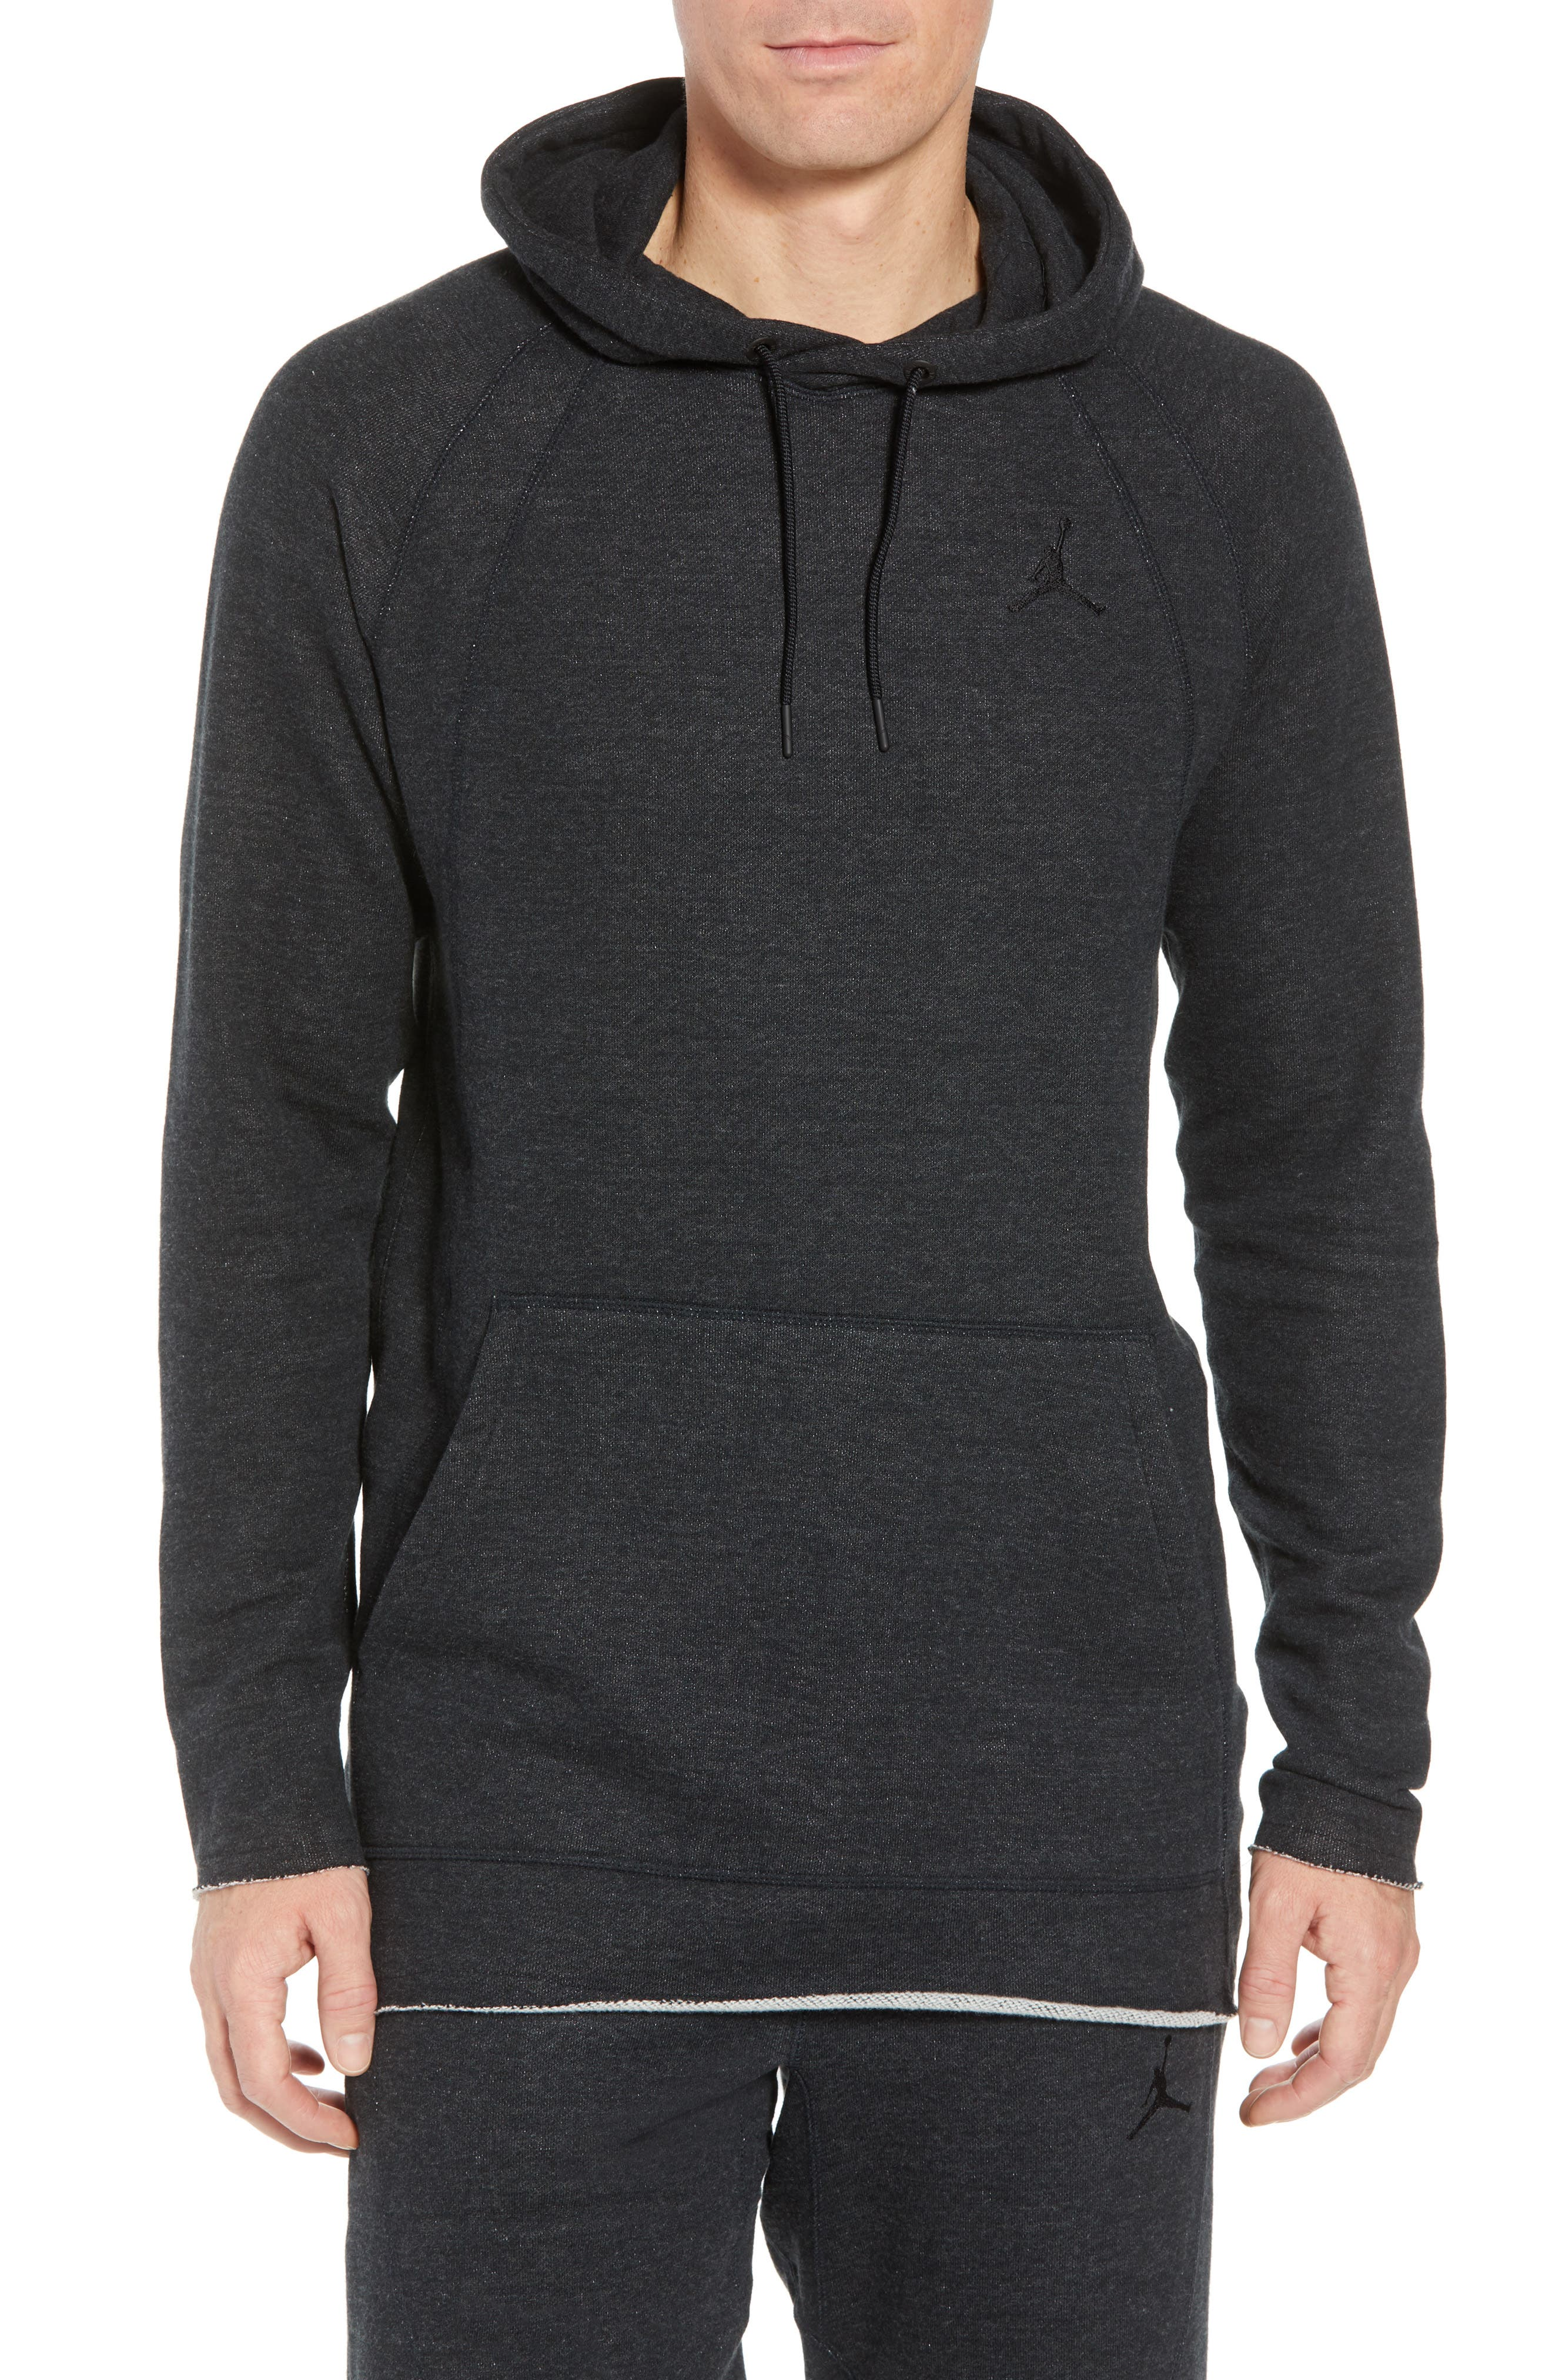 Wings Light French Terry Hoodie,                             Main thumbnail 1, color,                             Black Heather/ Black